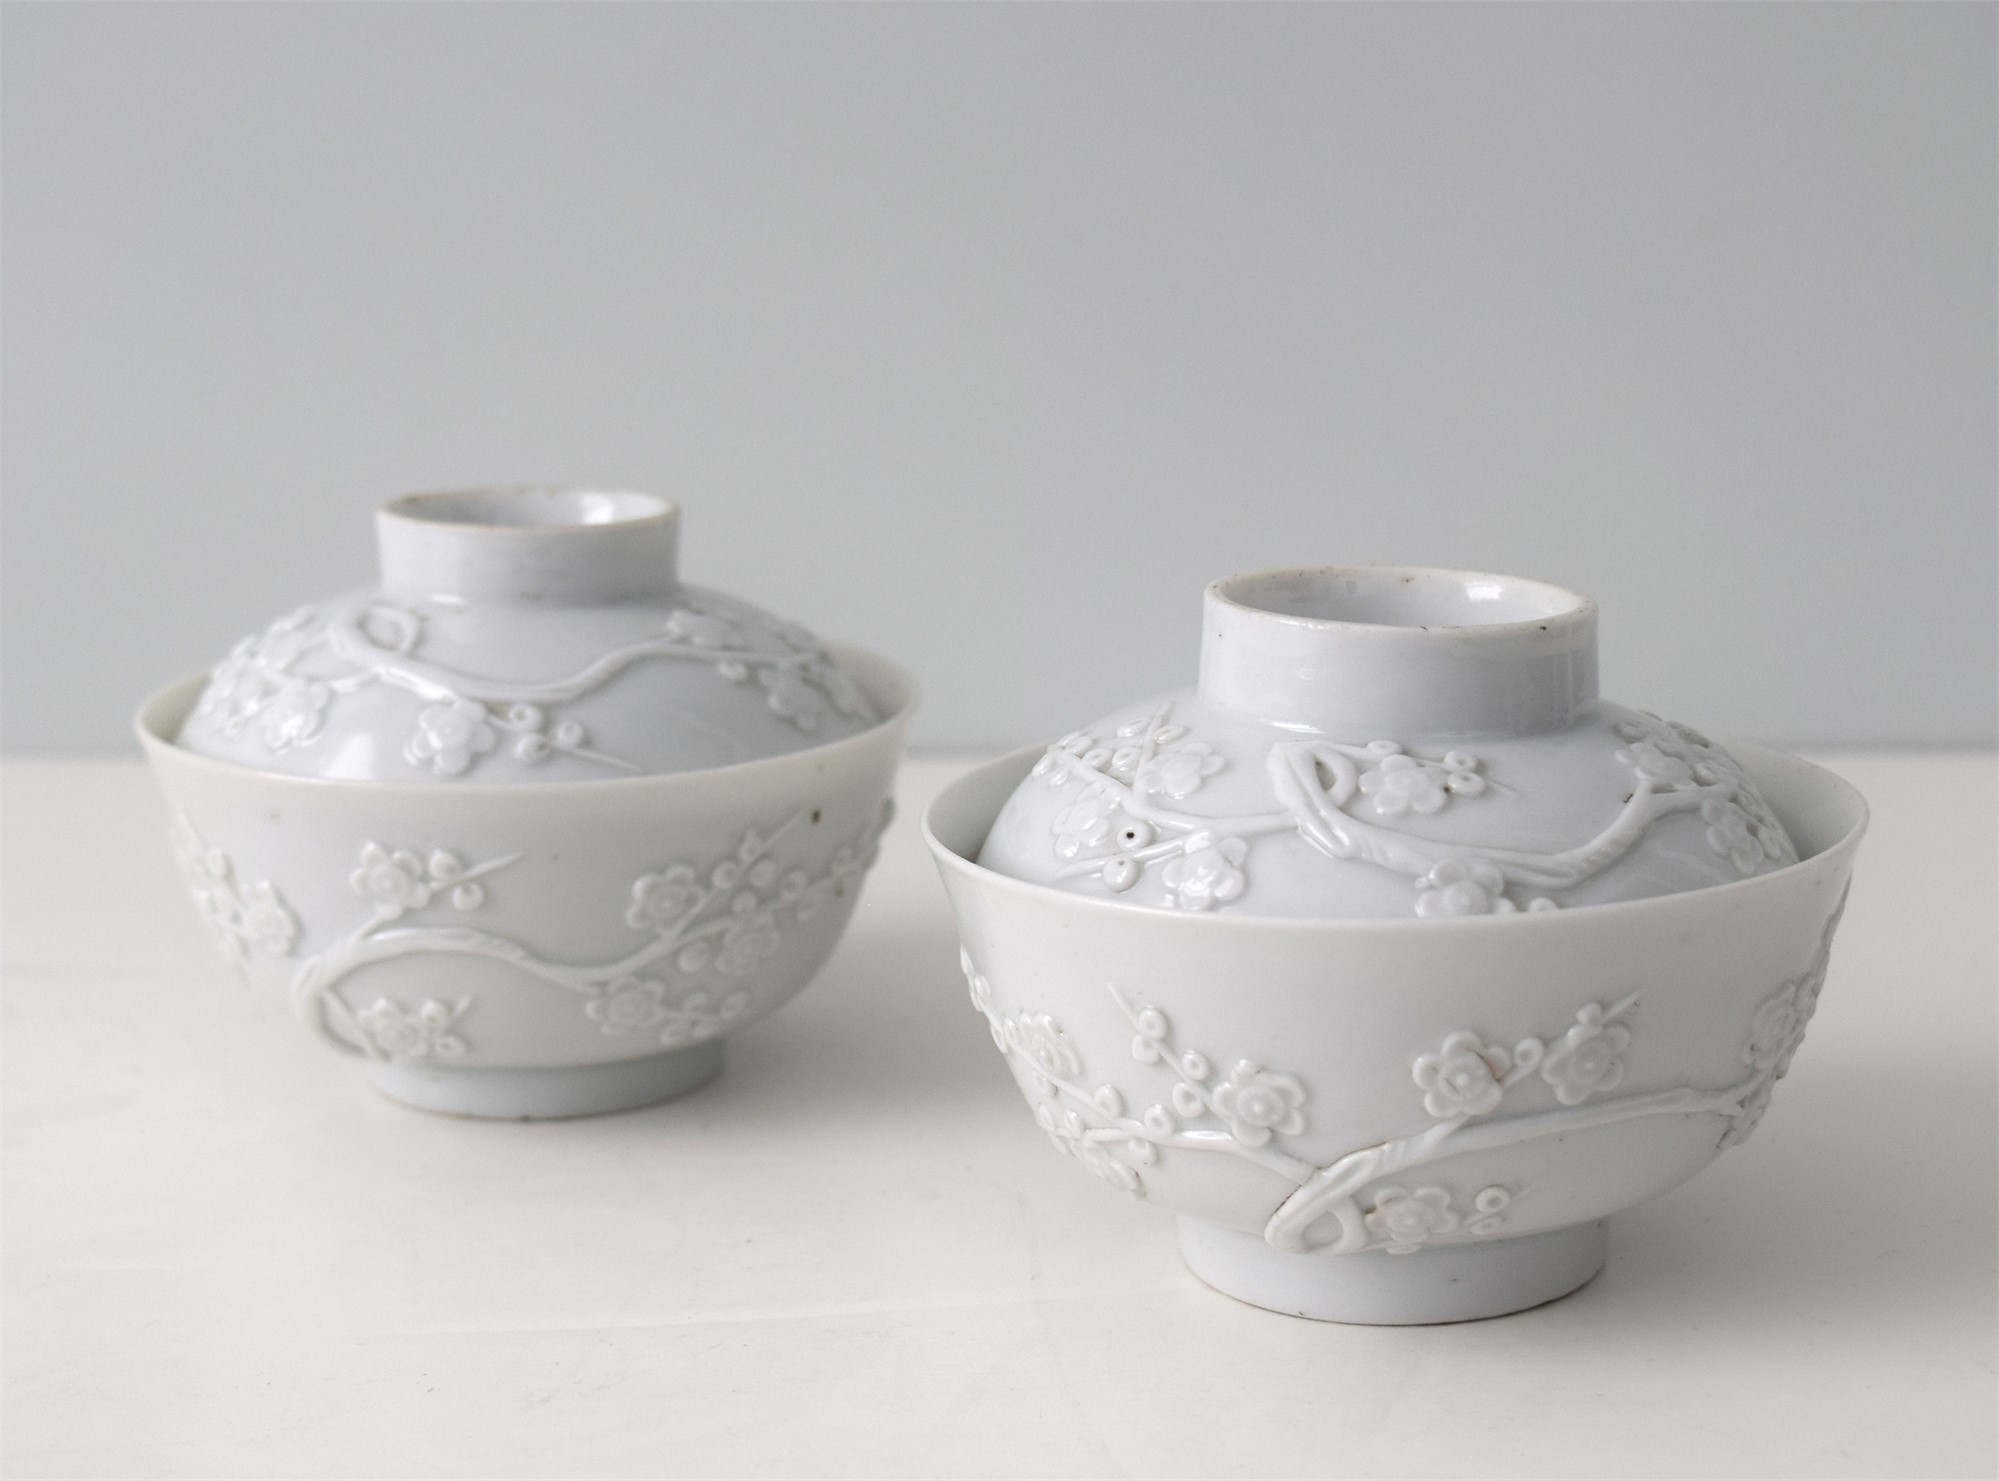 PAIR OF BLANC-DE-CHINE BOWLS AND COVERS WITH MOLDED PRUNUS BLOSSOMS